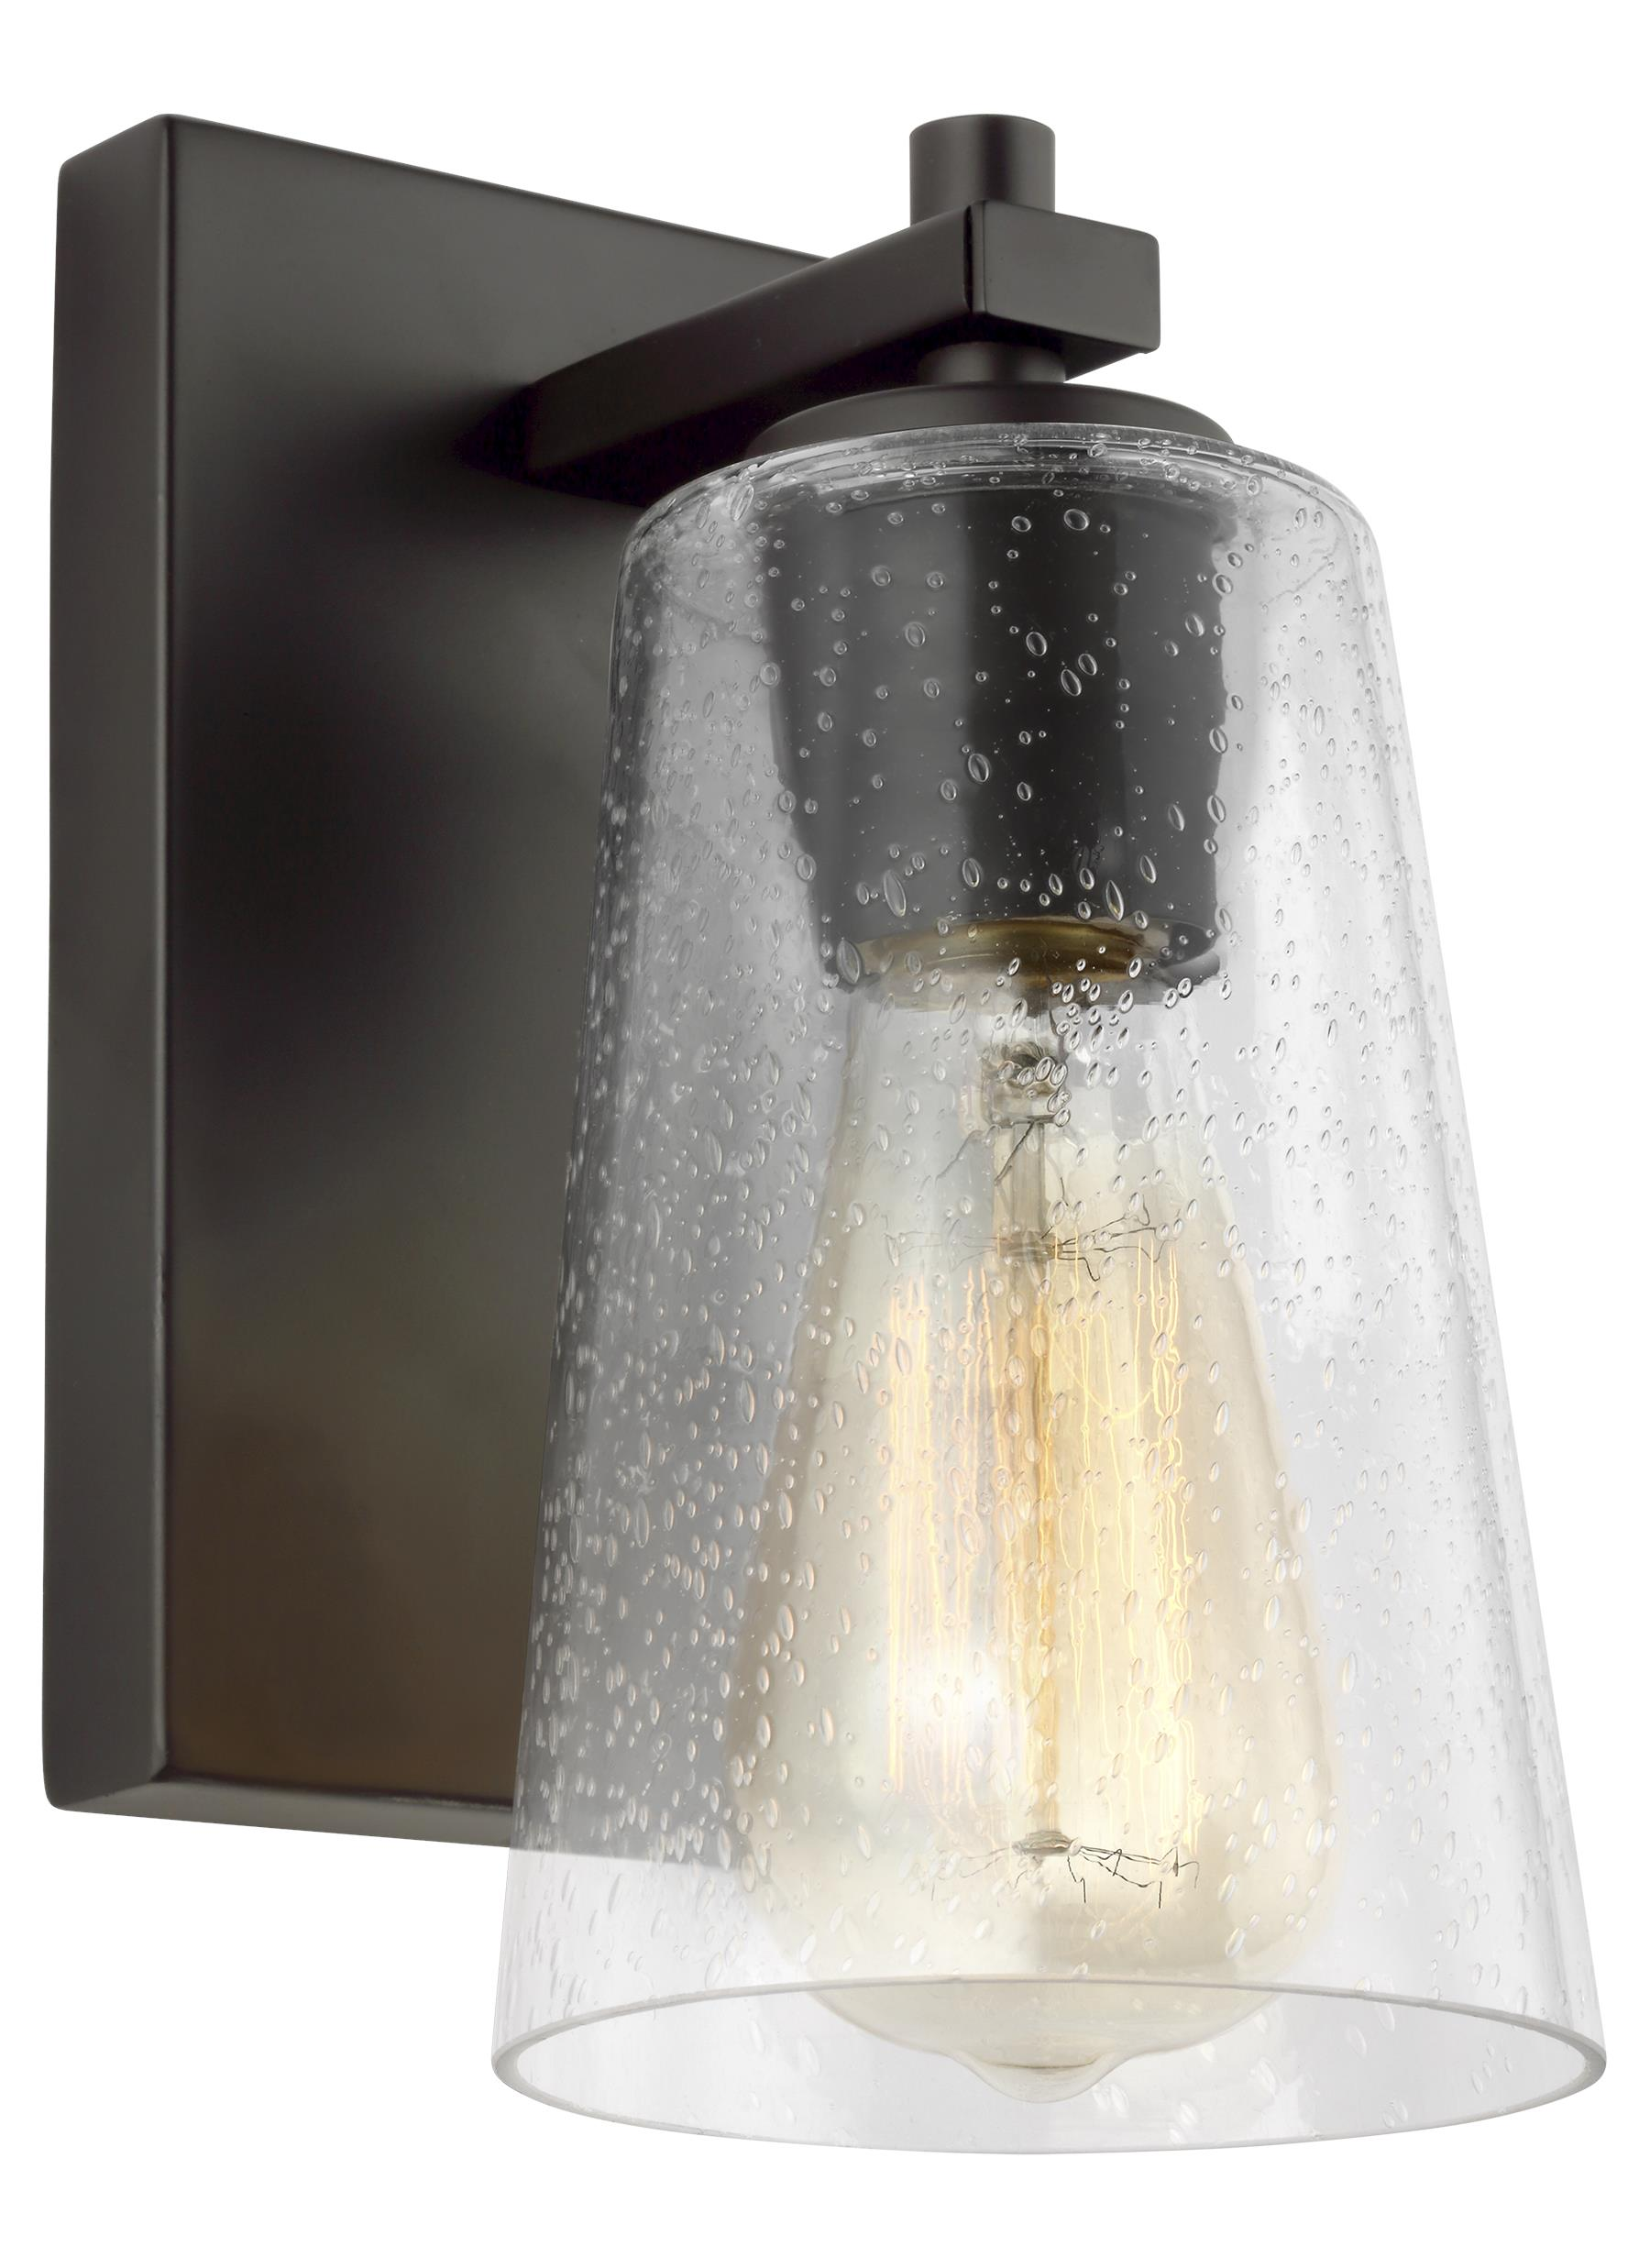 Vs24301orb 1 Light Wall Sconce Oil Rubbed Bronze Loading Zoom